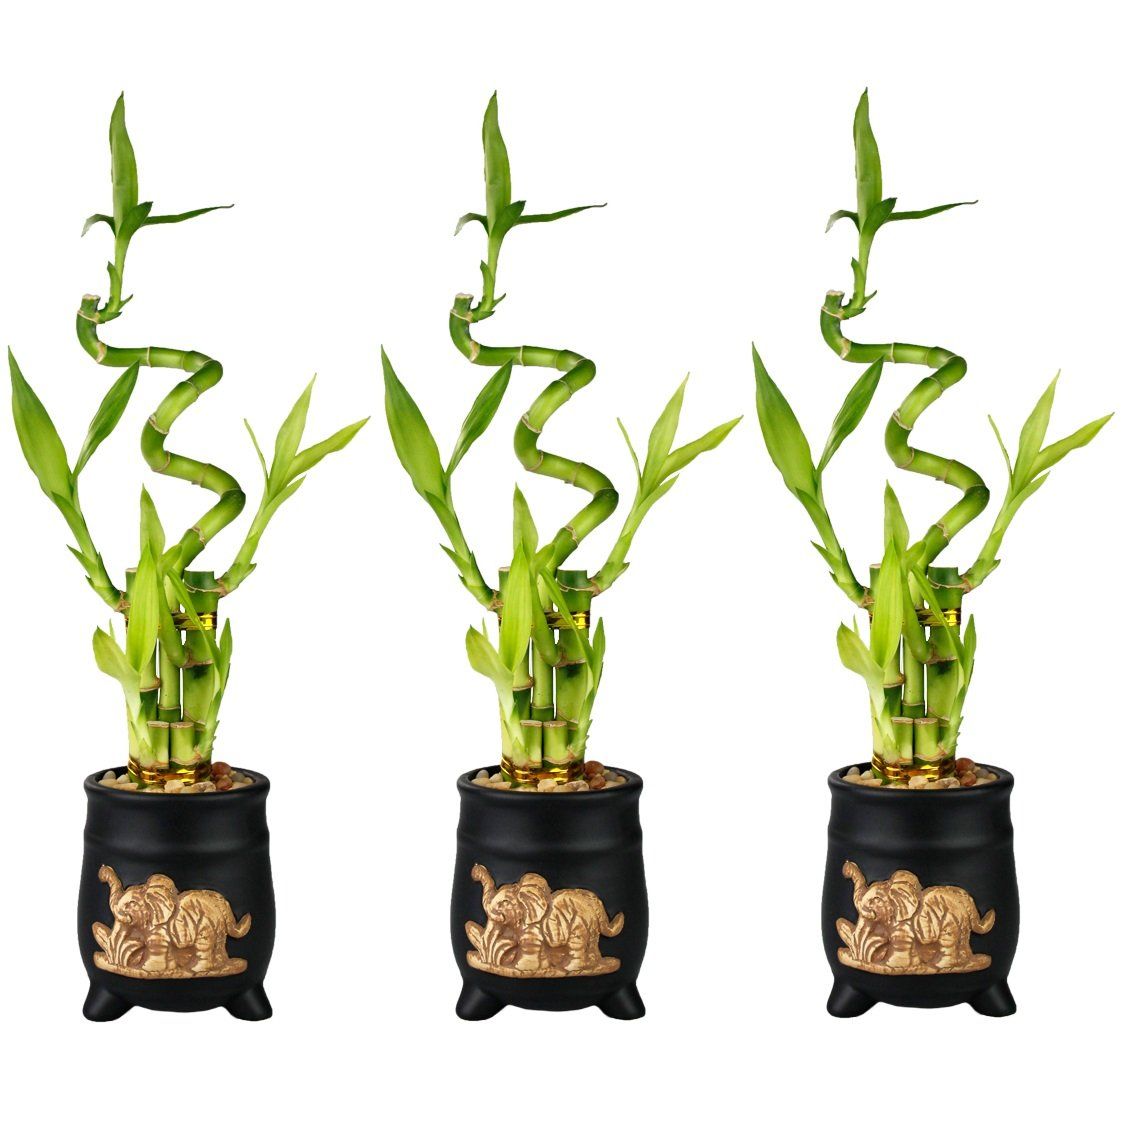 Set of Lucky Bamboo Five Stalk with Spiral Arrangements with Black Ceramic Elephant Standing Planters (Set of 3)